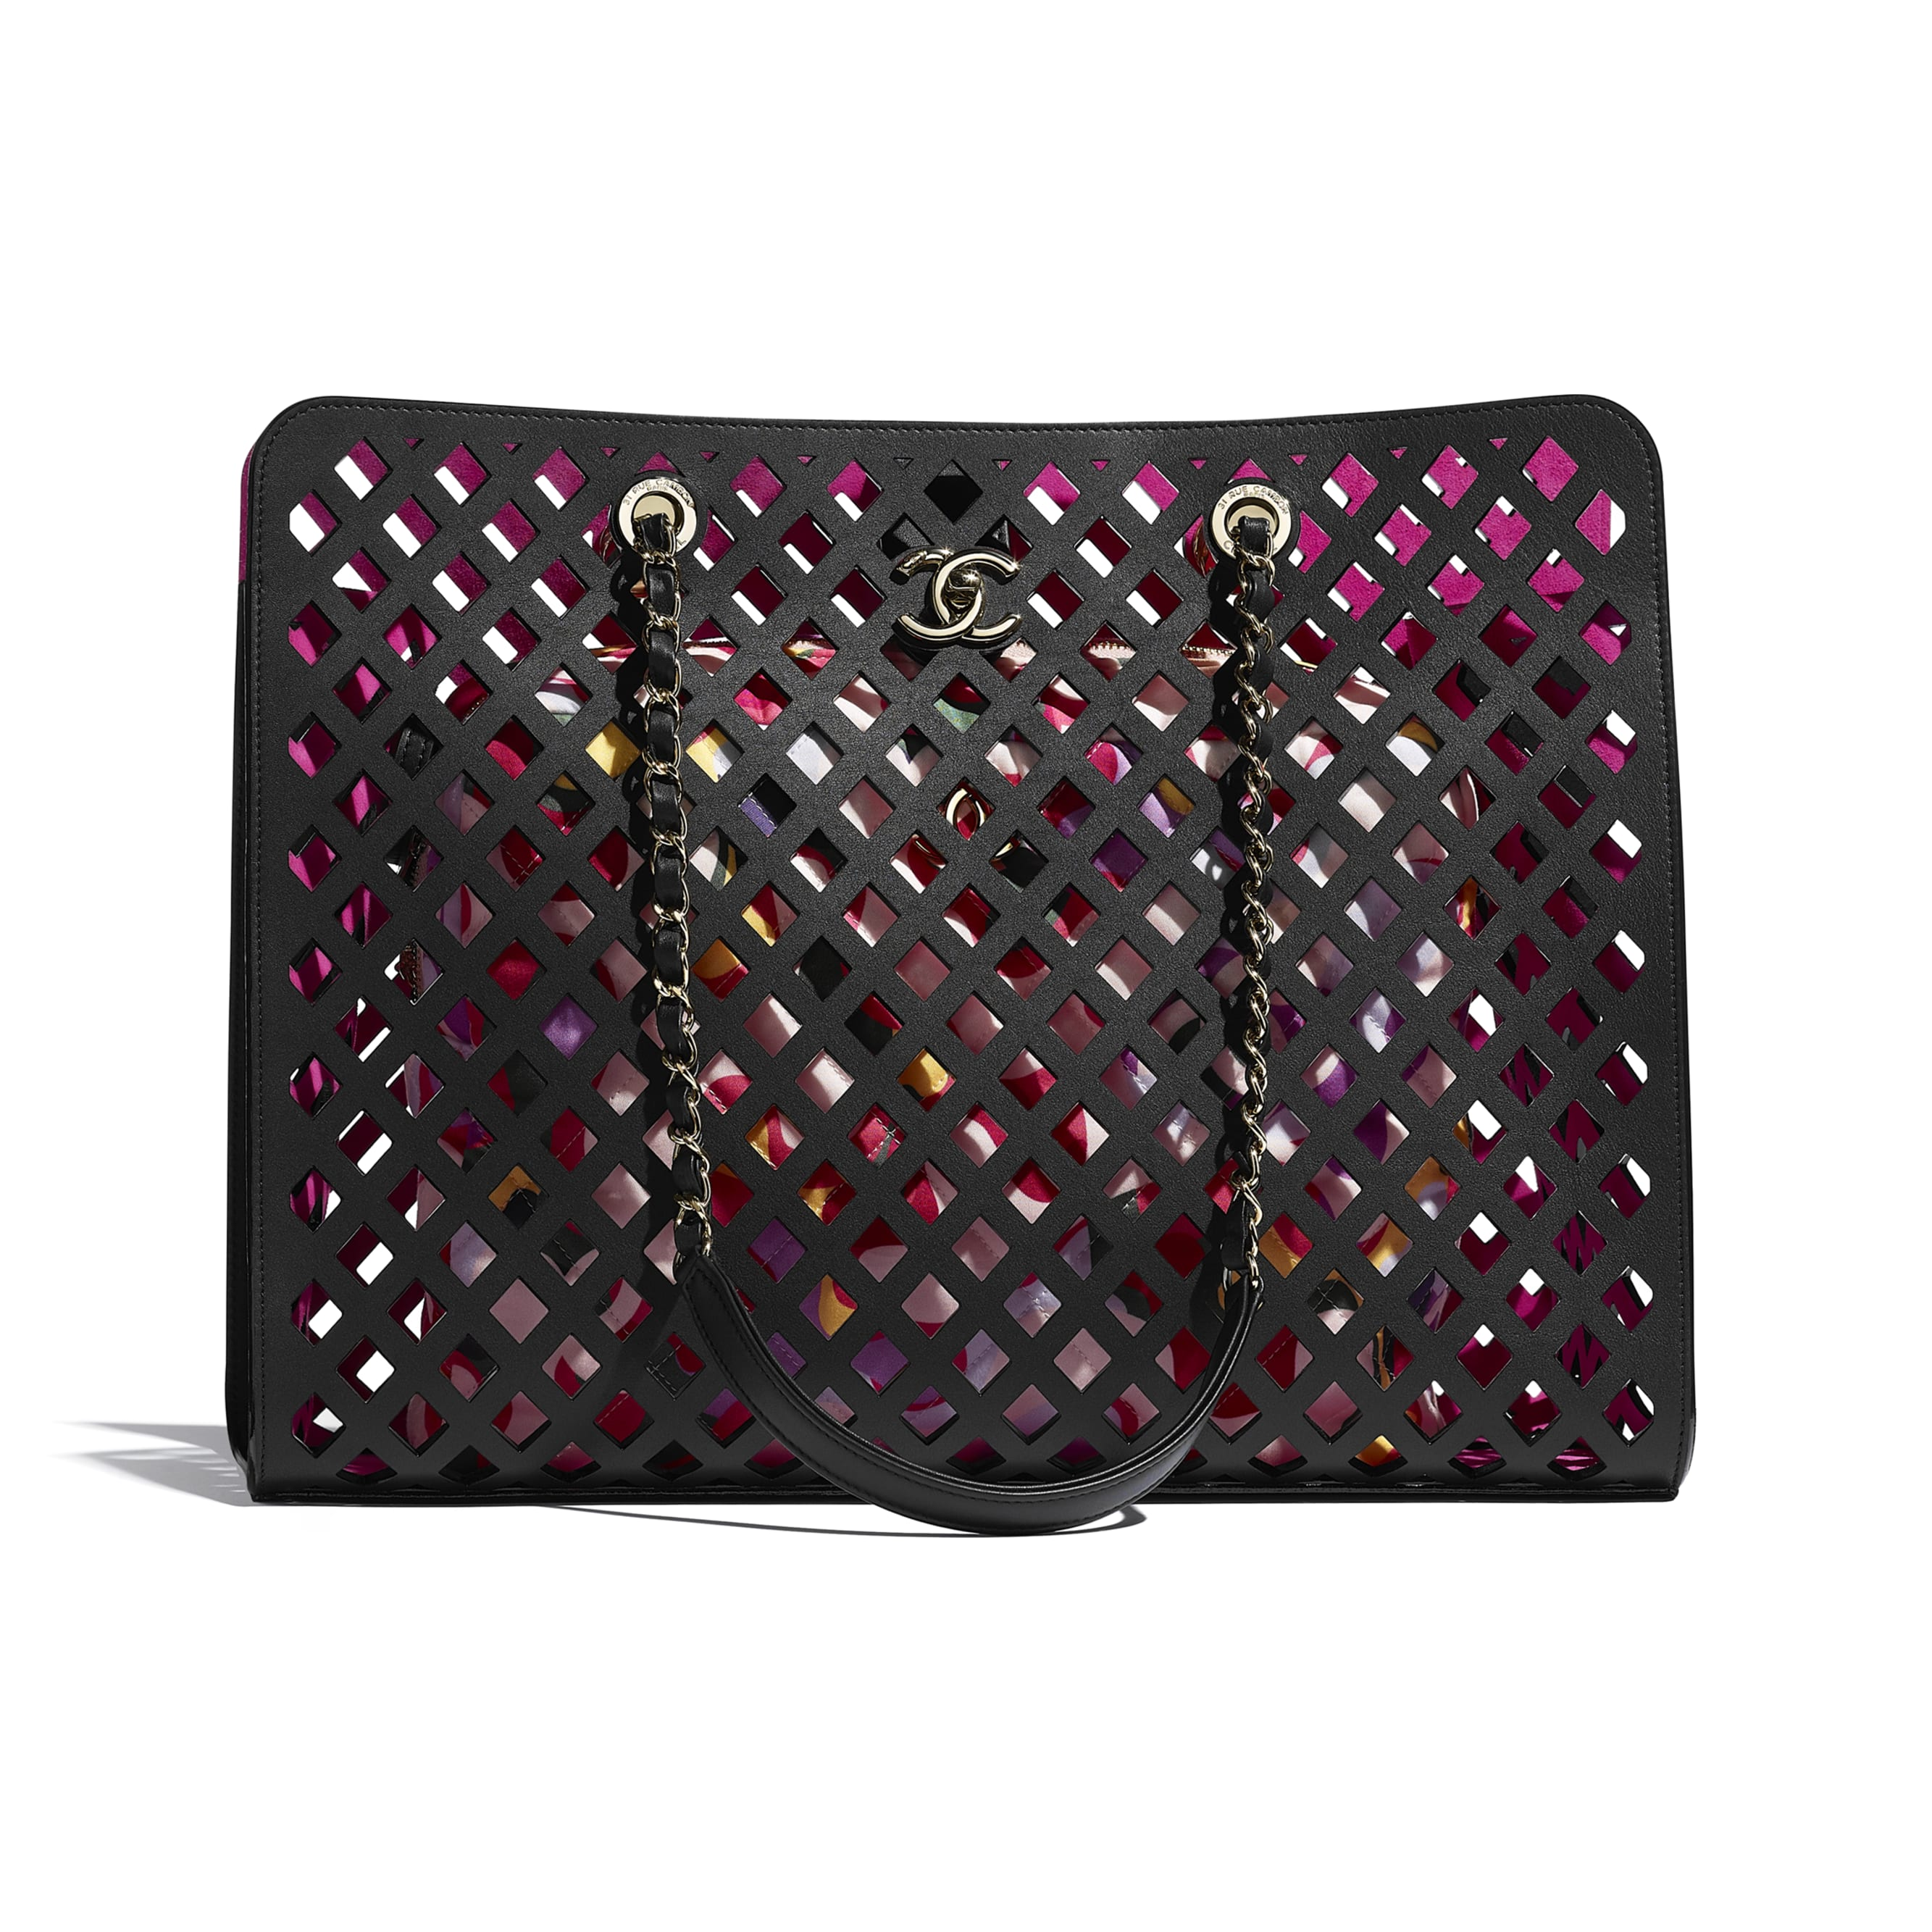 Shopping Bag - Black - Perforated Calfskin, Printed Fabric & Gold-Tone Metal - CHANEL - Default view - see standard sized version